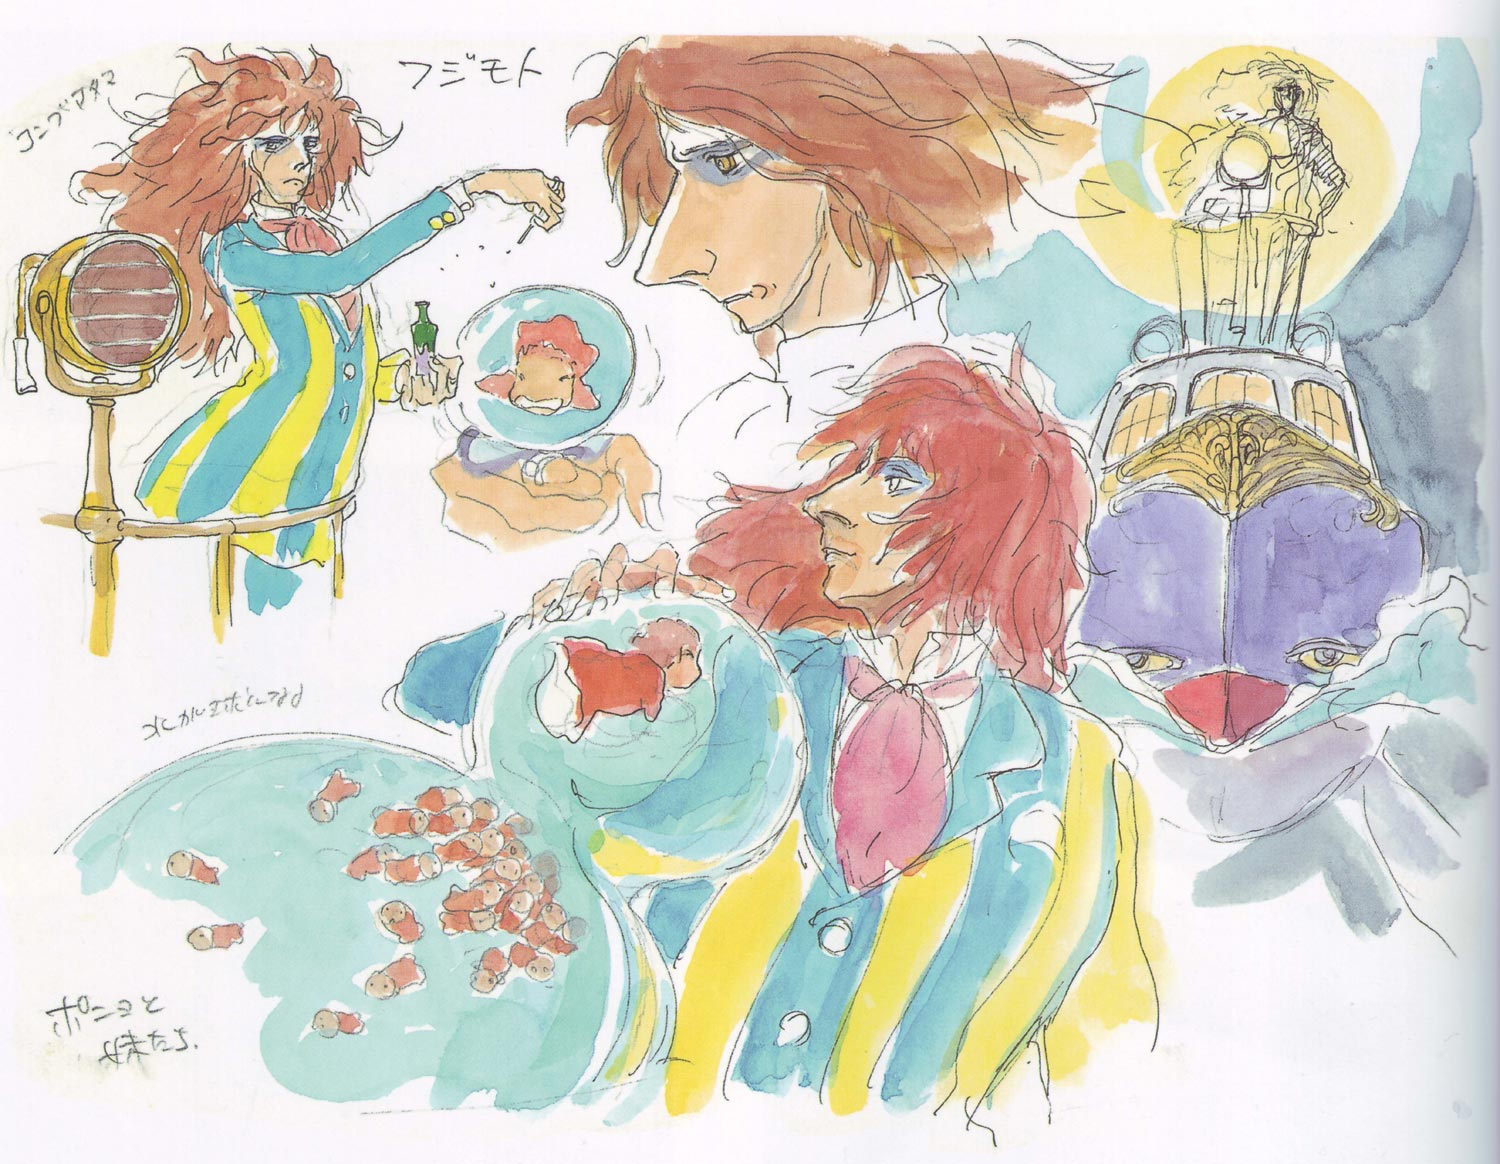 ponyo_on_the_cliff_by_the_sea_artwork_character__17.jpg